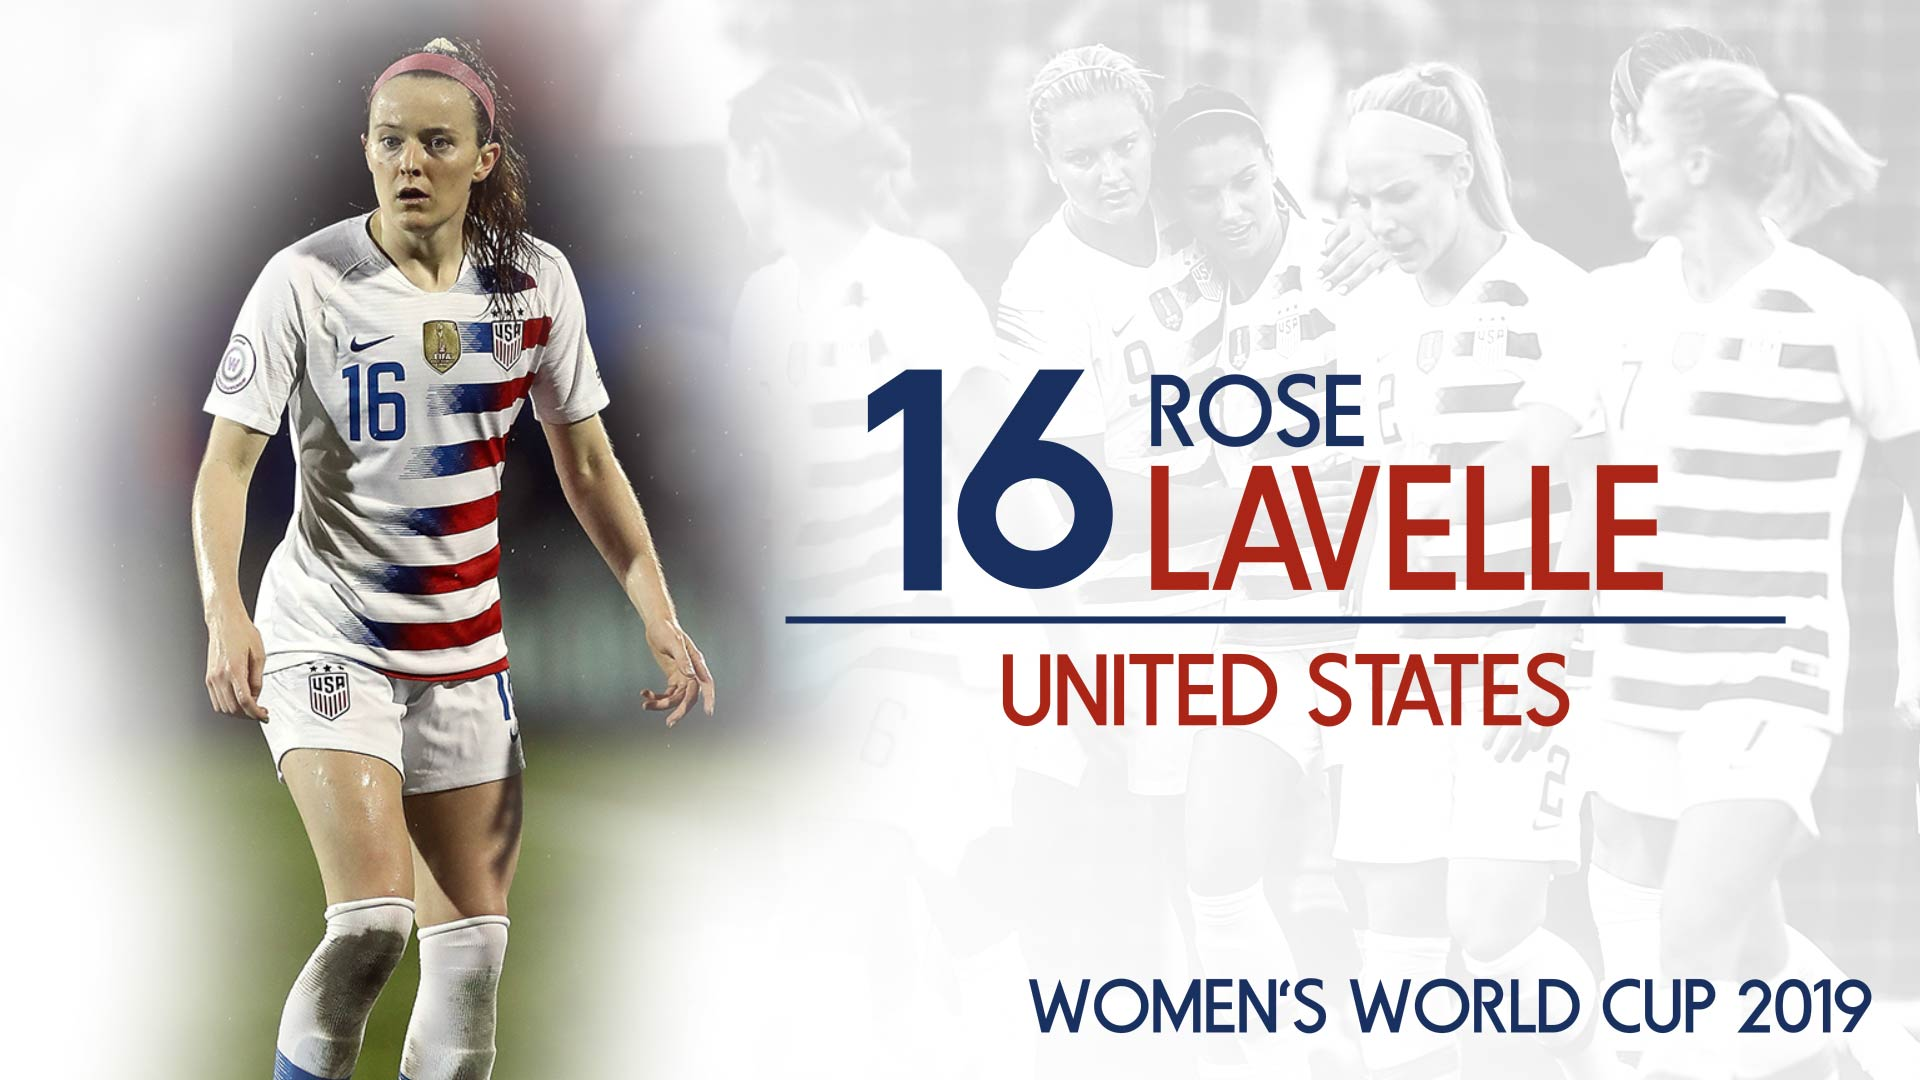 c80a99c5d29 Women's World Cup 2019: Rose Lavelle defying all odds   FOOTBALL ...